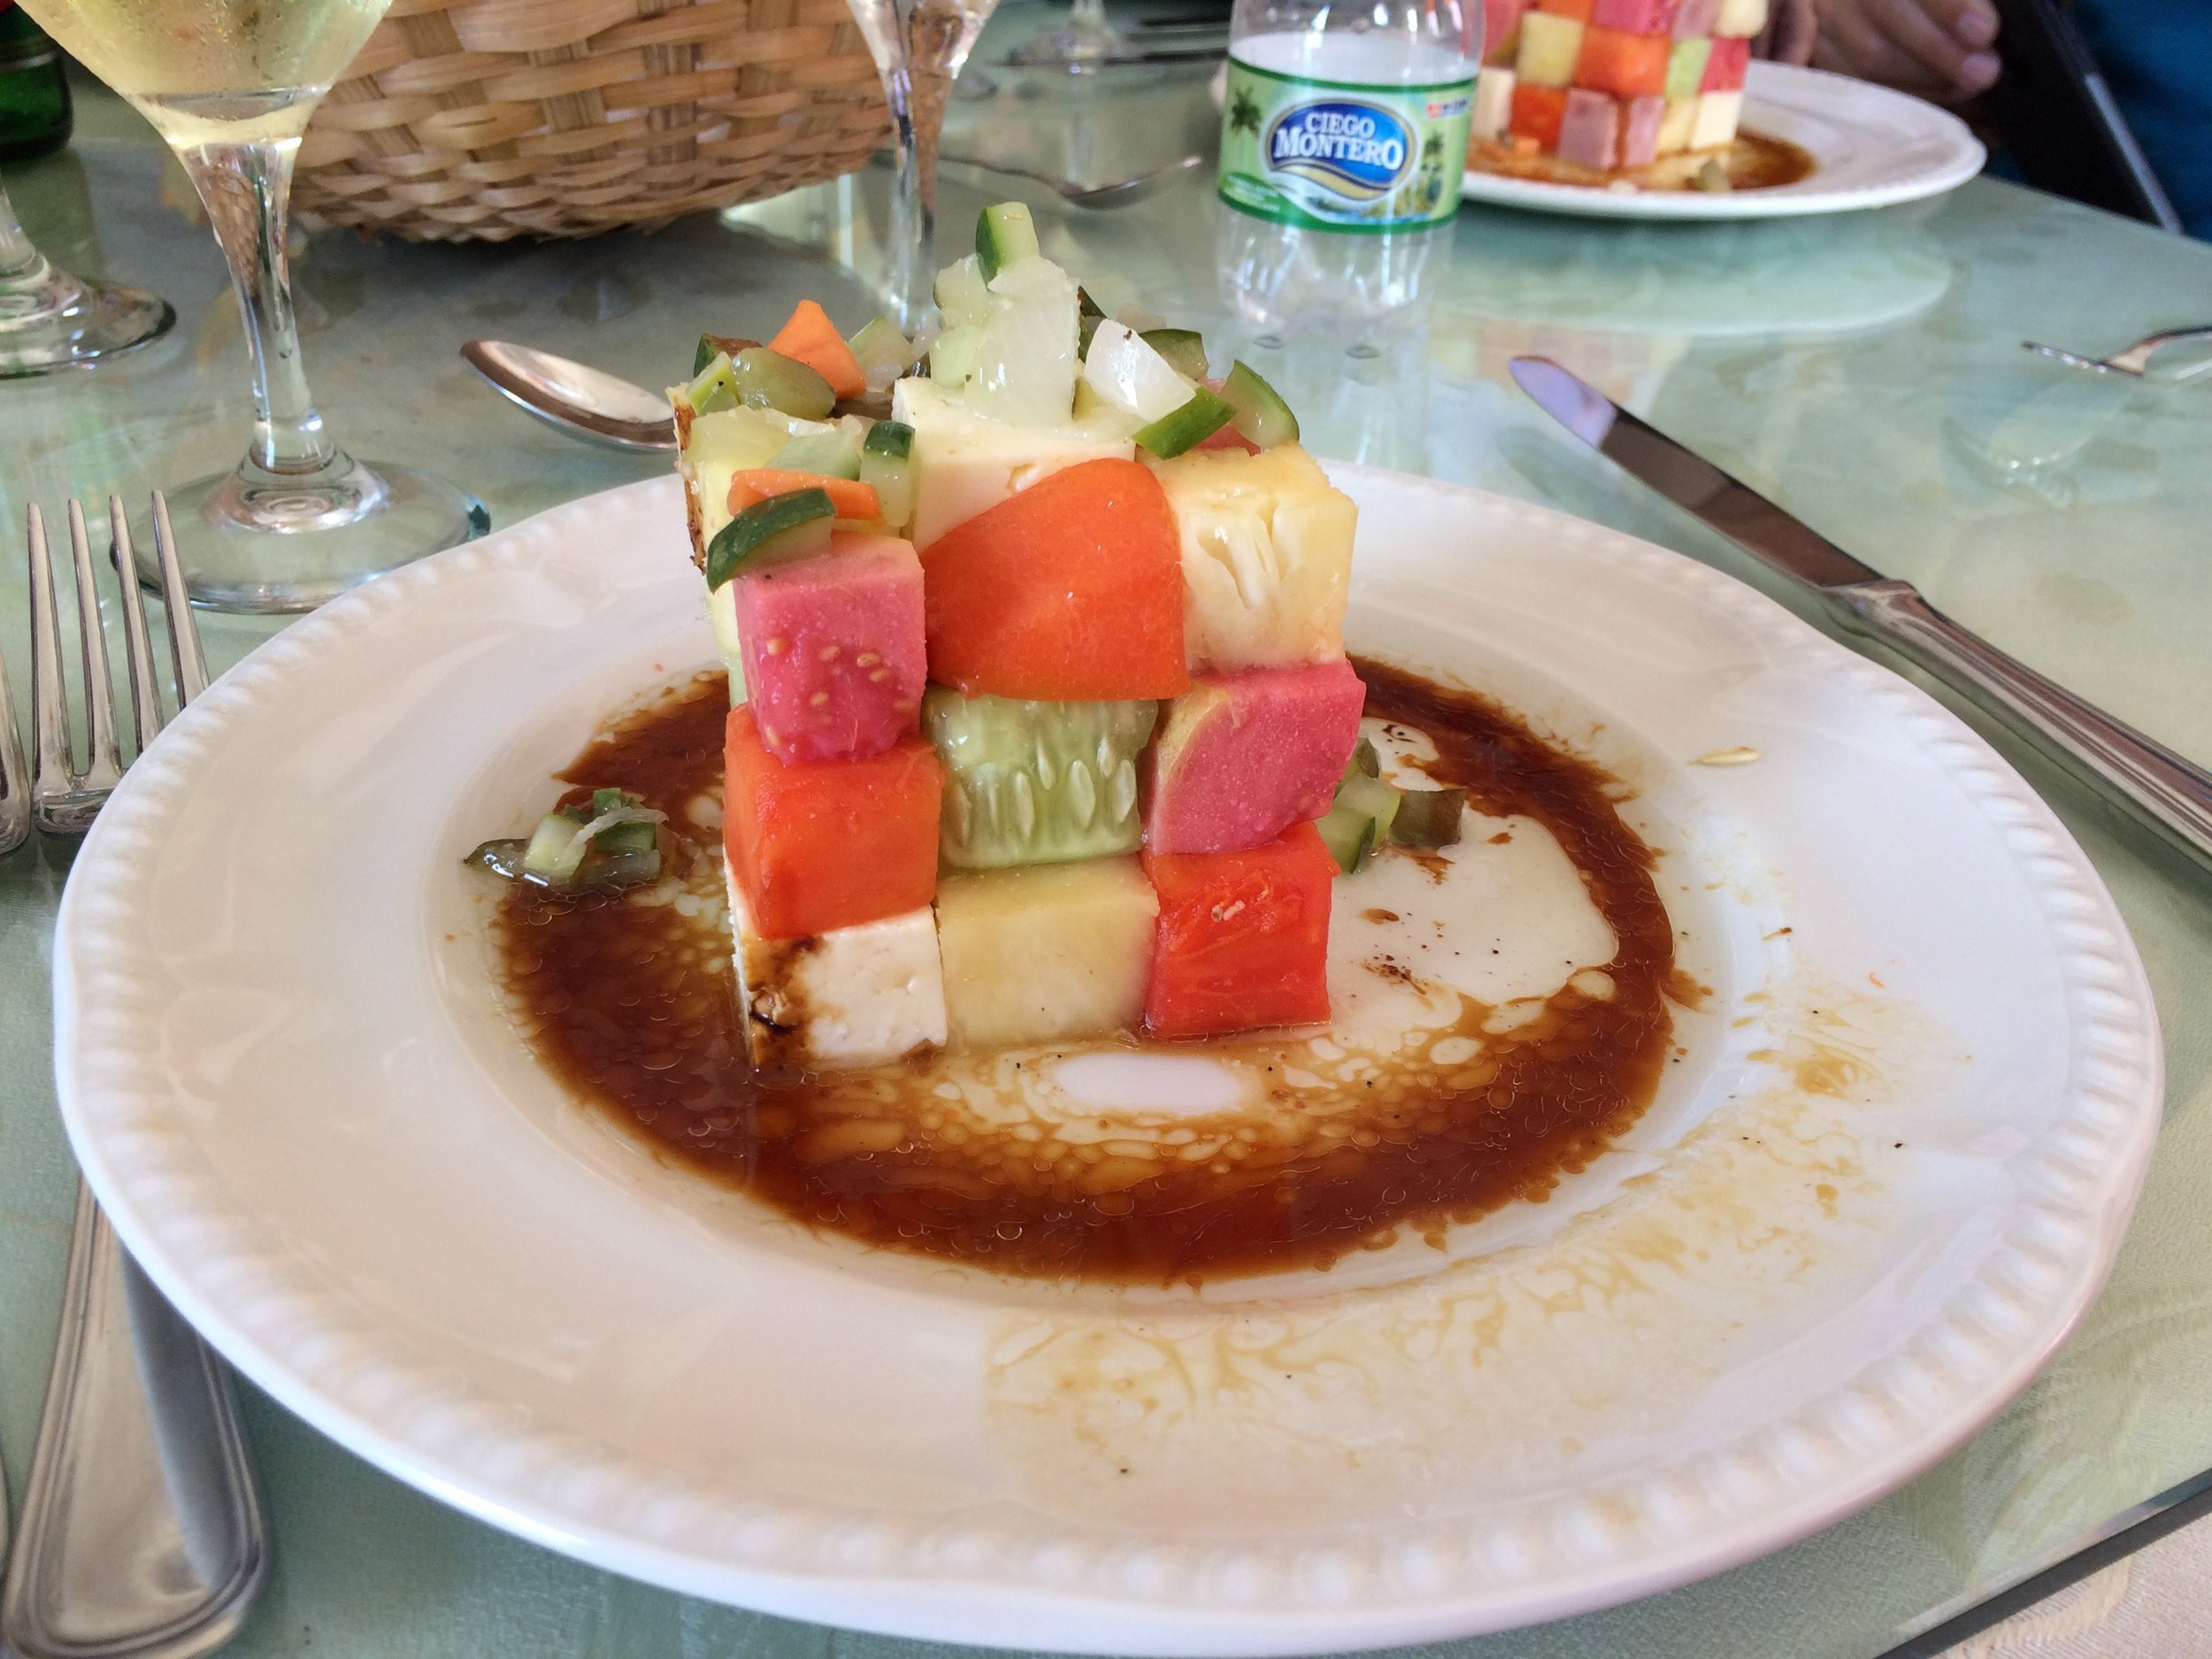 Rubik's cube of cucumber, watermelon, and cheese